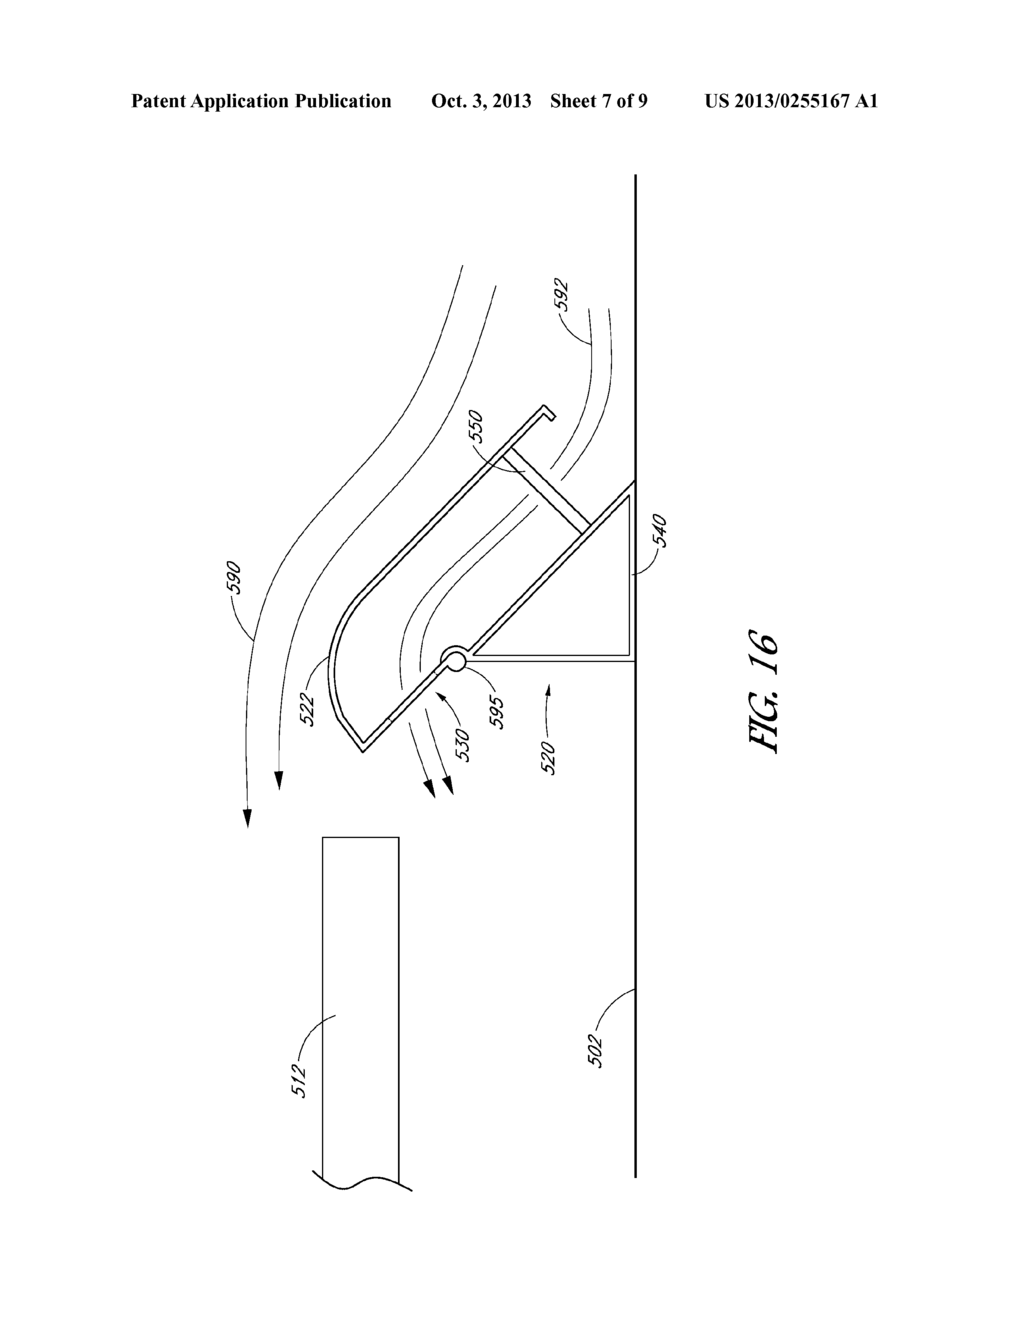 Active Fire Blocking Wind Deflector Diagram Schematic And Image 08